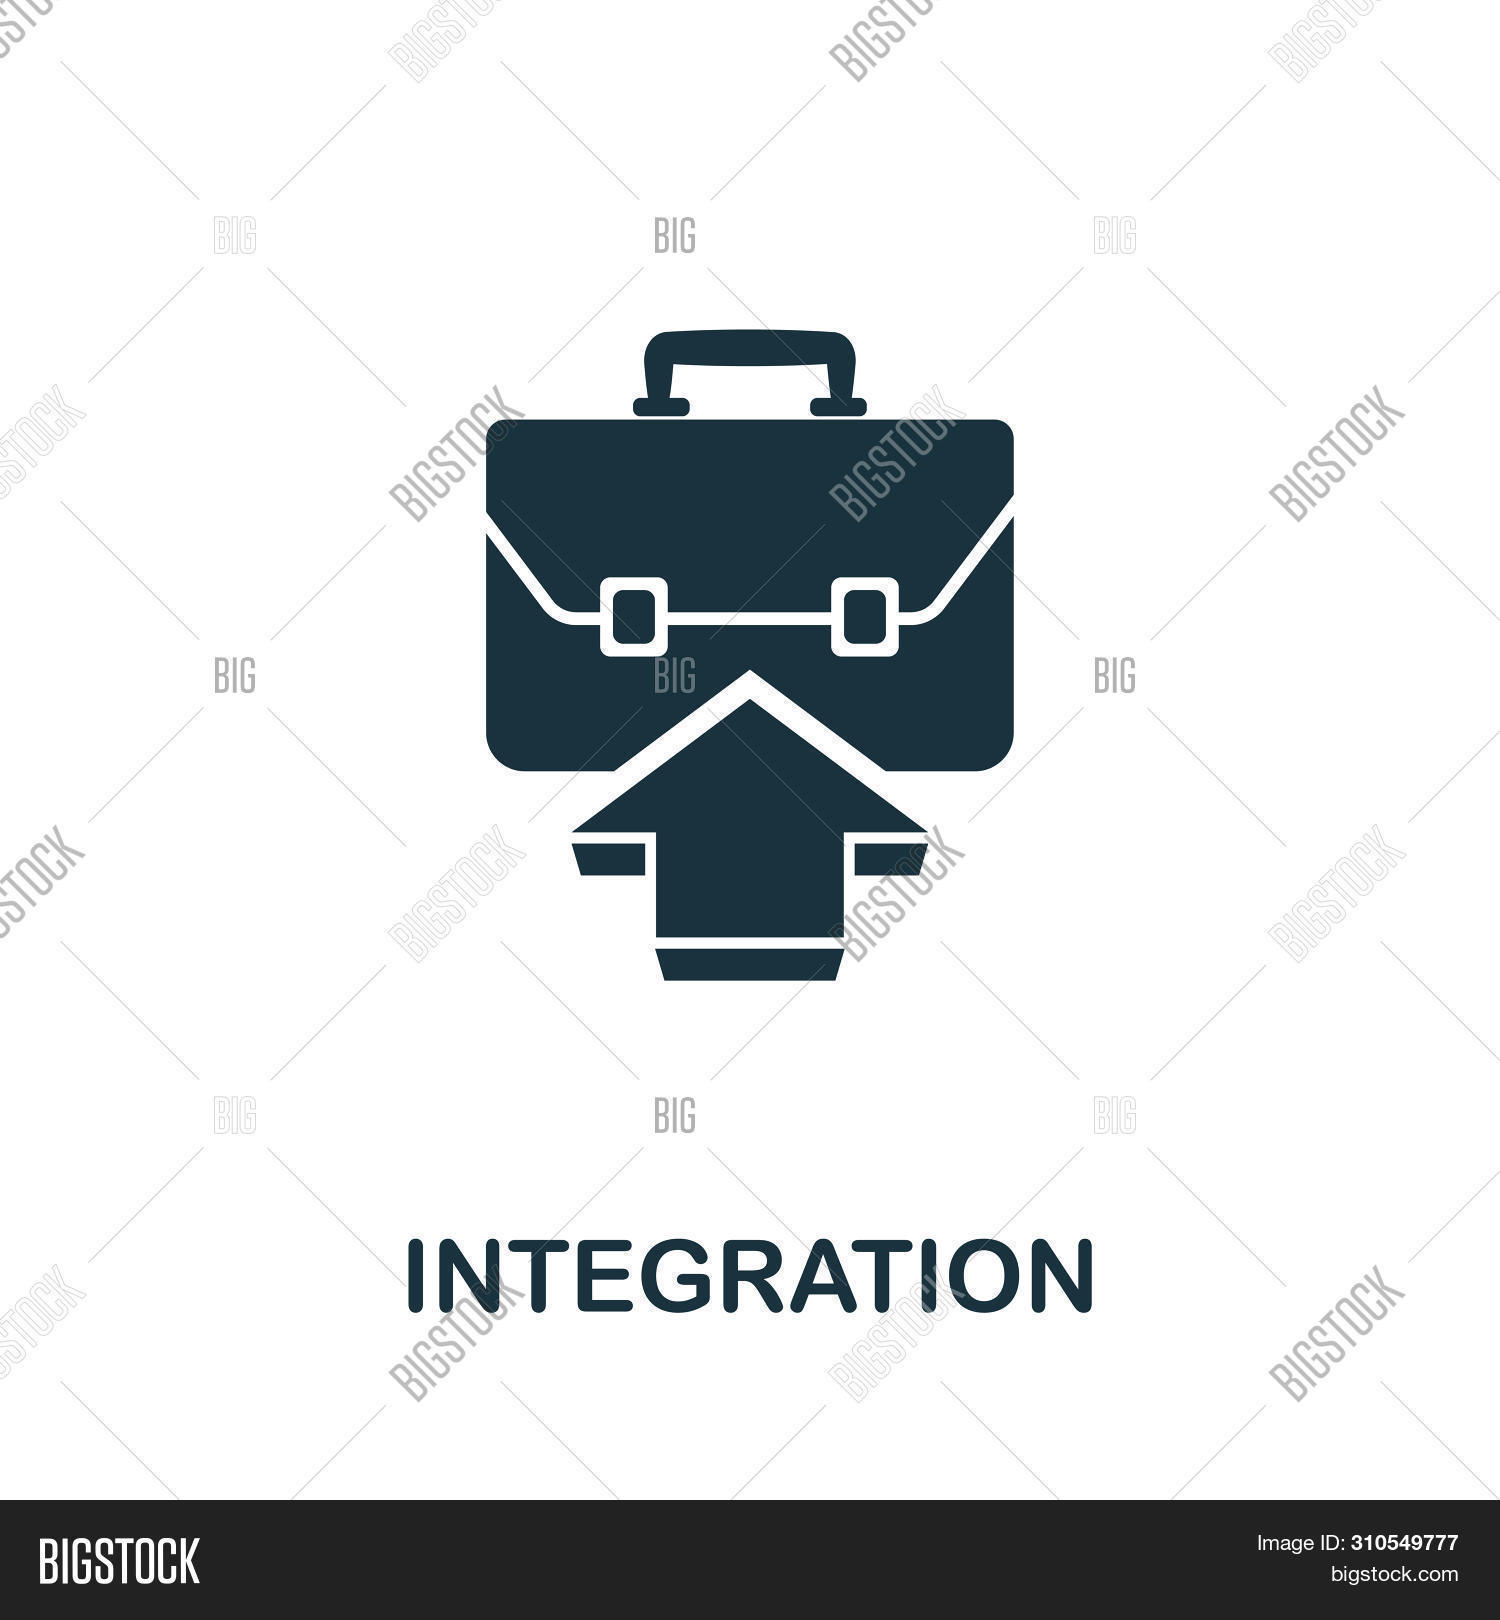 abstract,agile,arrow,background,black,business,concept,connection,data,design,element,flat,graphic,icon,illustration,industry,integrate,integrated,integration,interlocking,isolated,line,link,logo,management,operations,partnership,project,settings,sign,support,symbol,technology,white